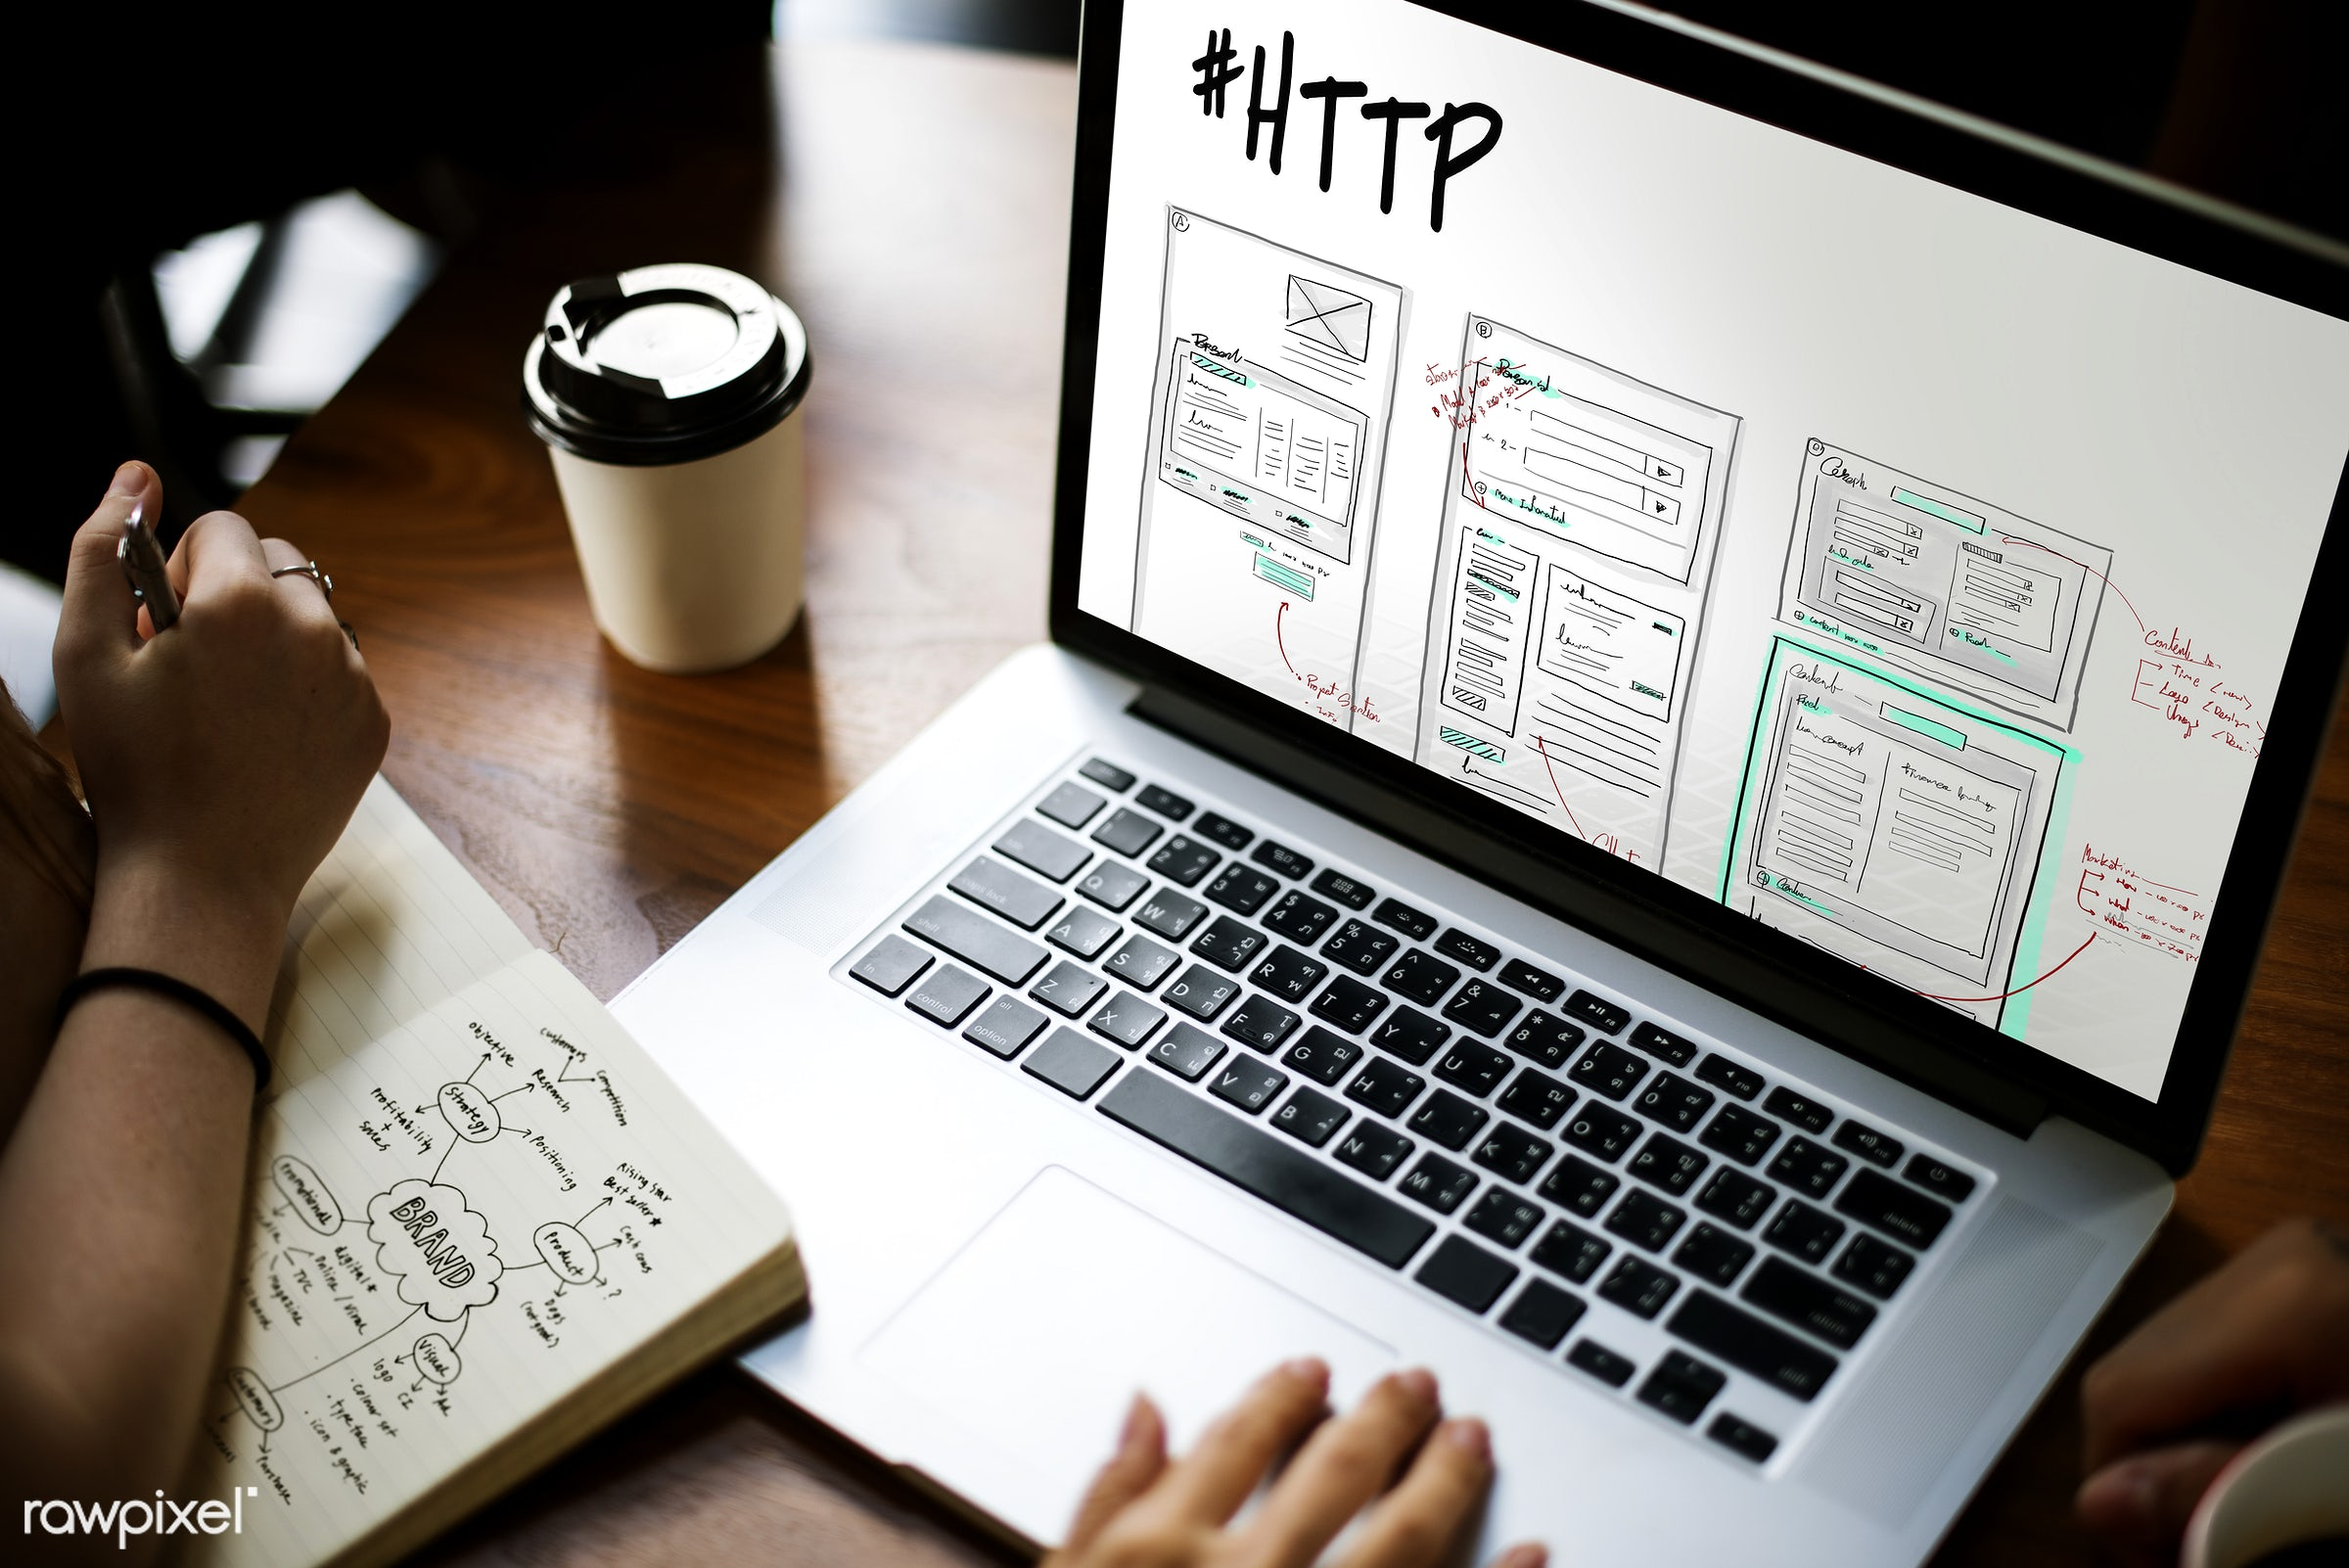 website, browser, browsing, coding, coffee cup, content, design, develop, device, digital, digital device, draft, drawing,...